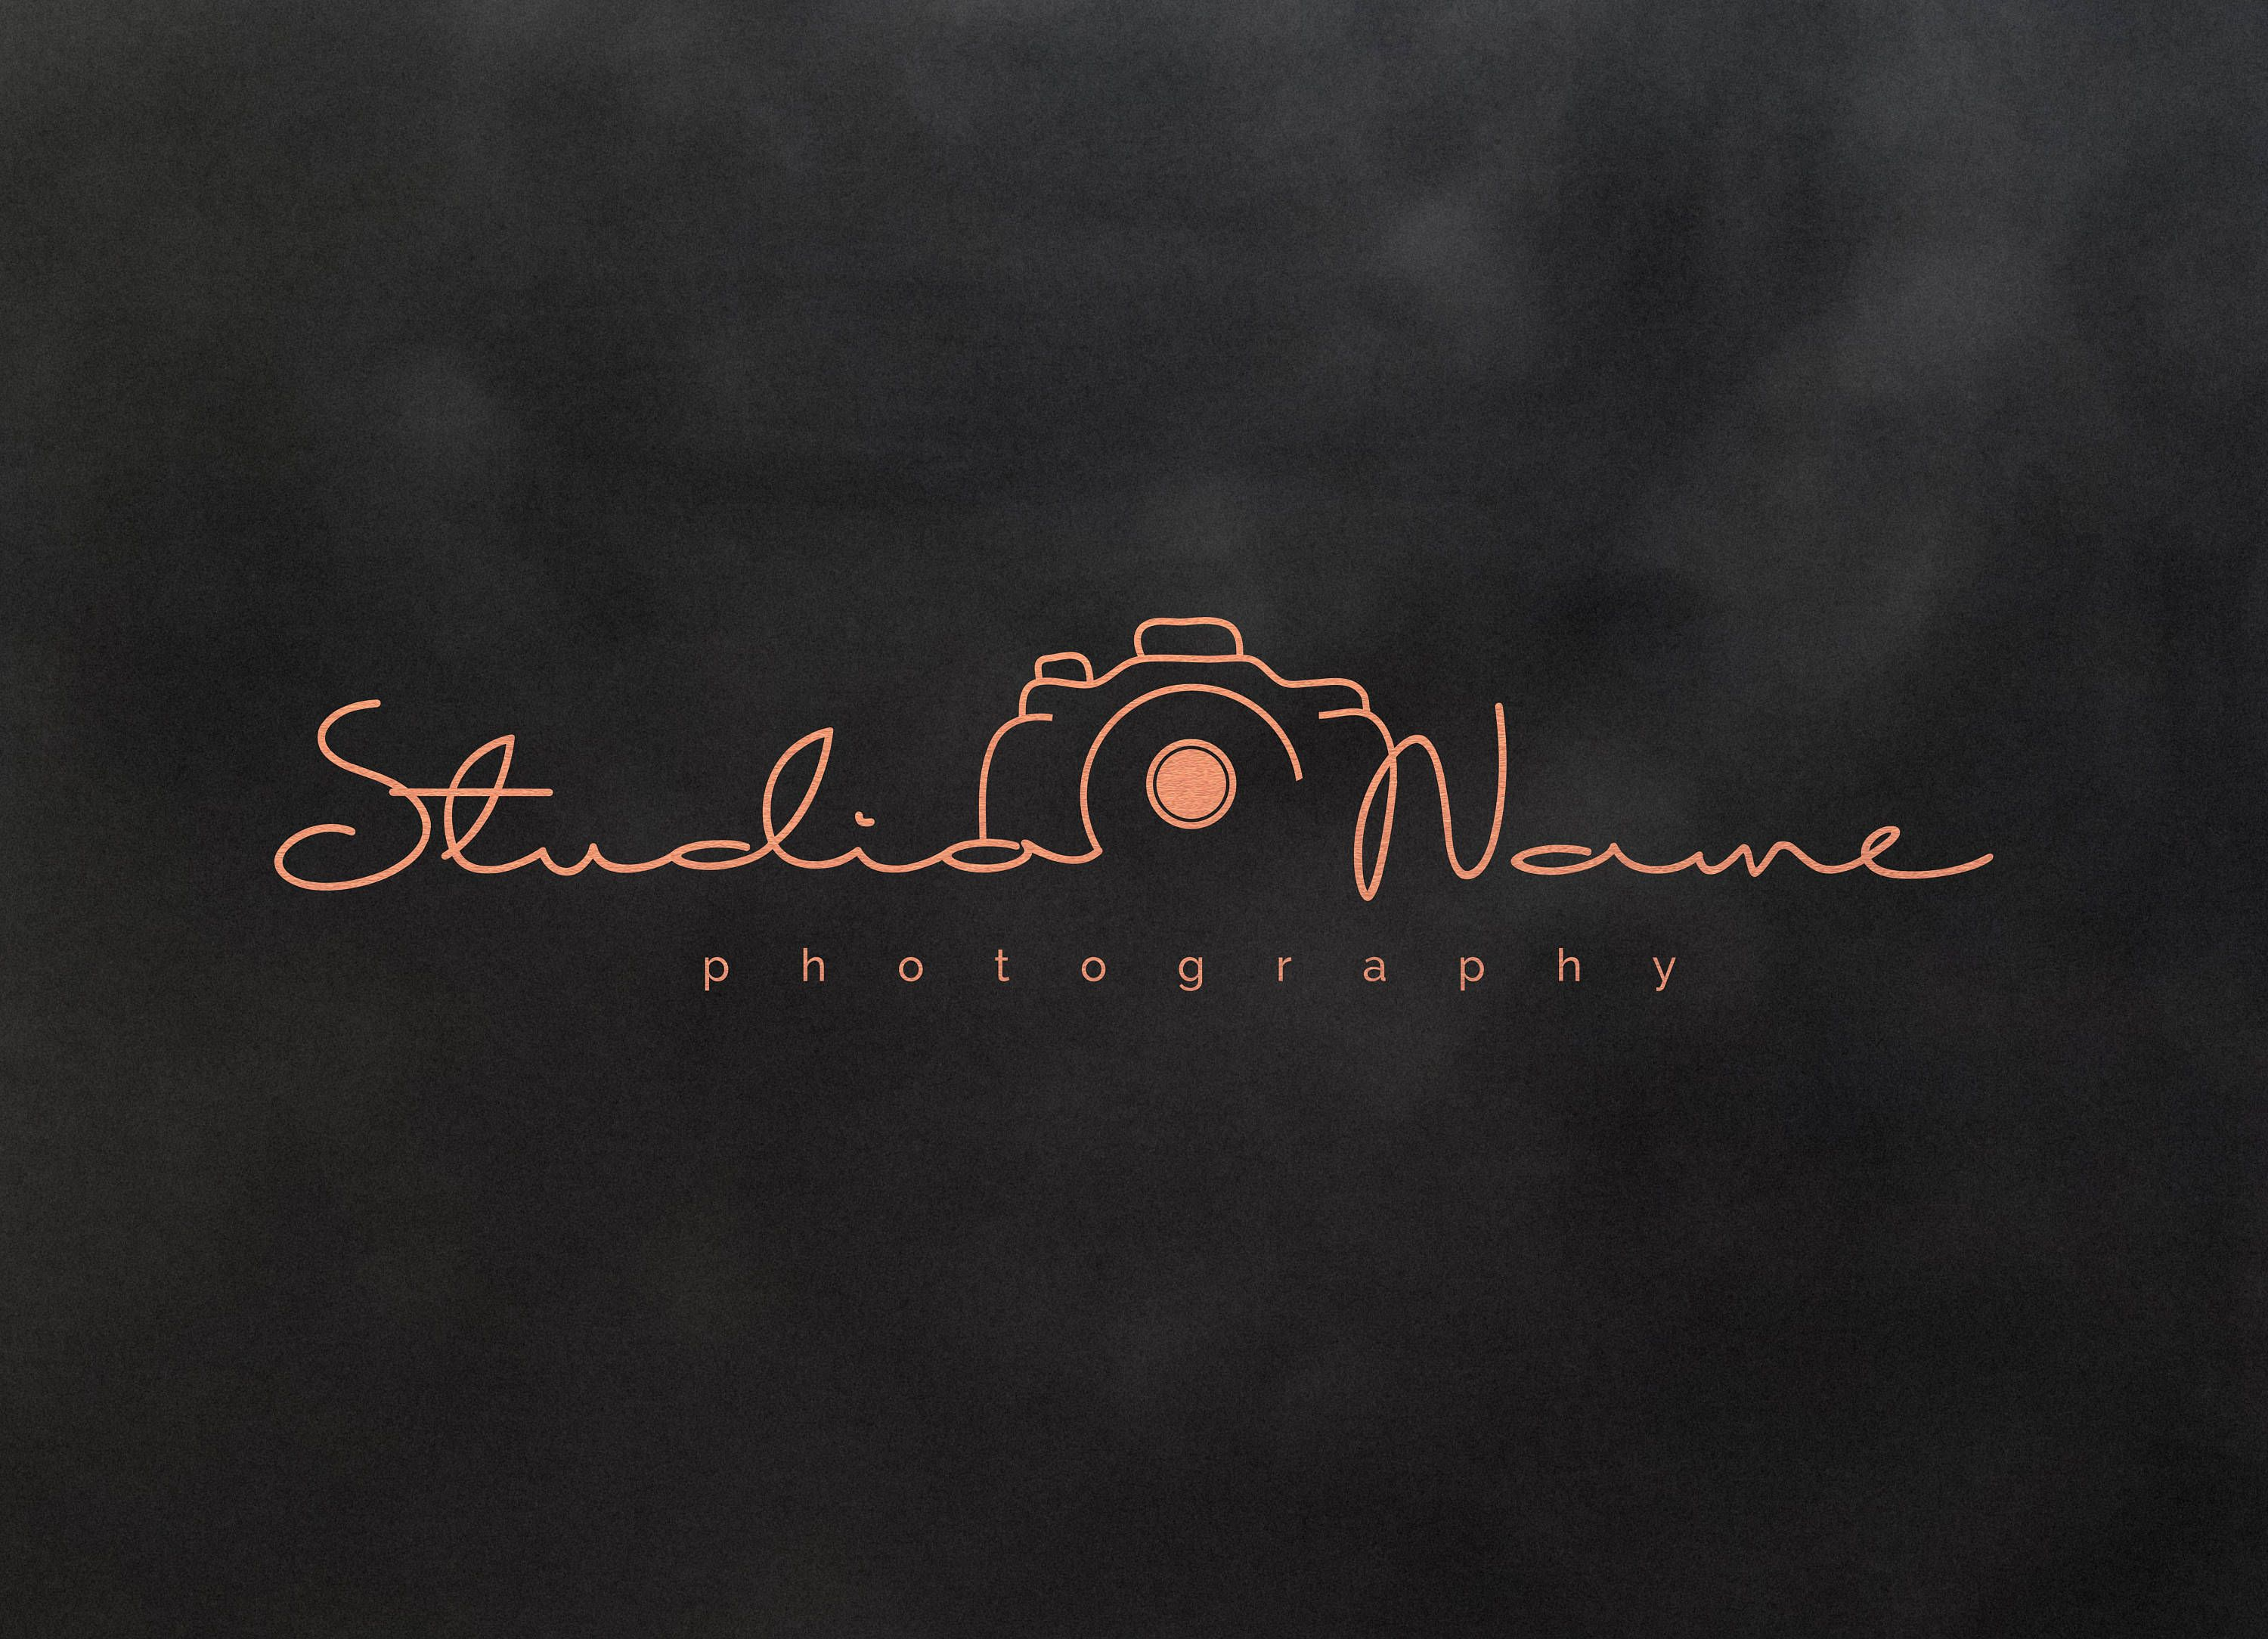 Photography Modern Camera Logo With Multiple Foil Colors